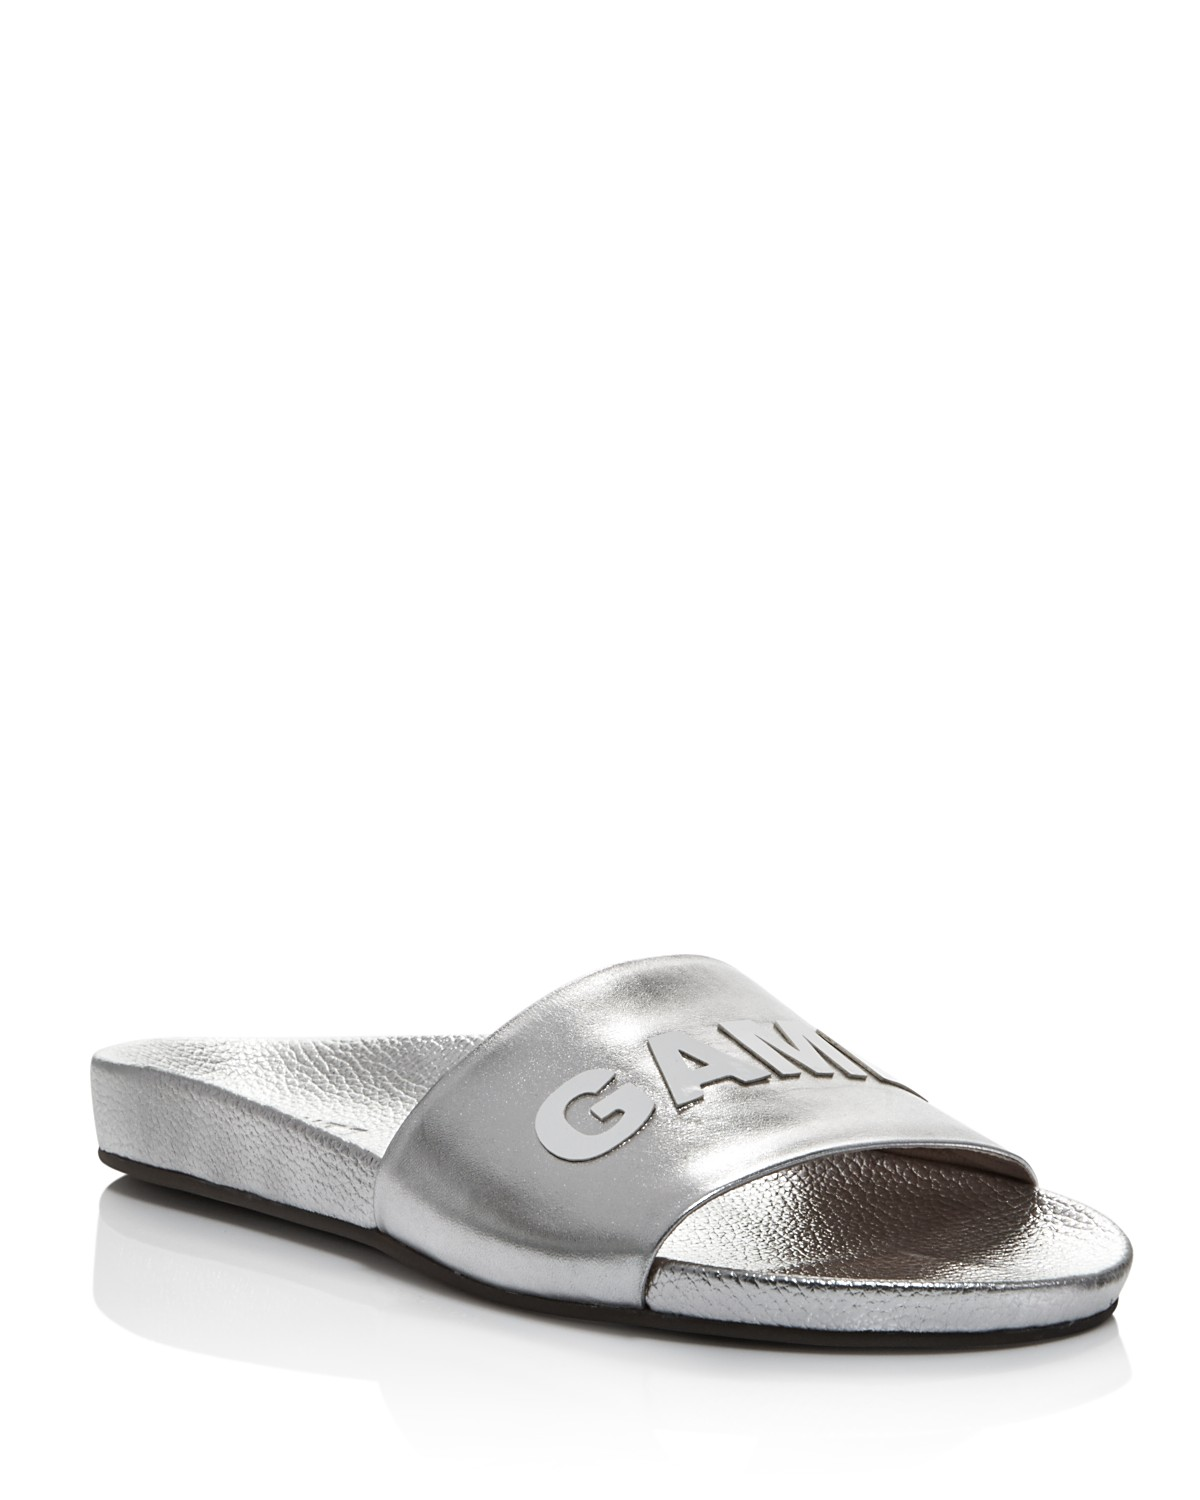 Schutz Women's Game Over Leather Pool Slide Sandals - 100% Exclusive A0pg2